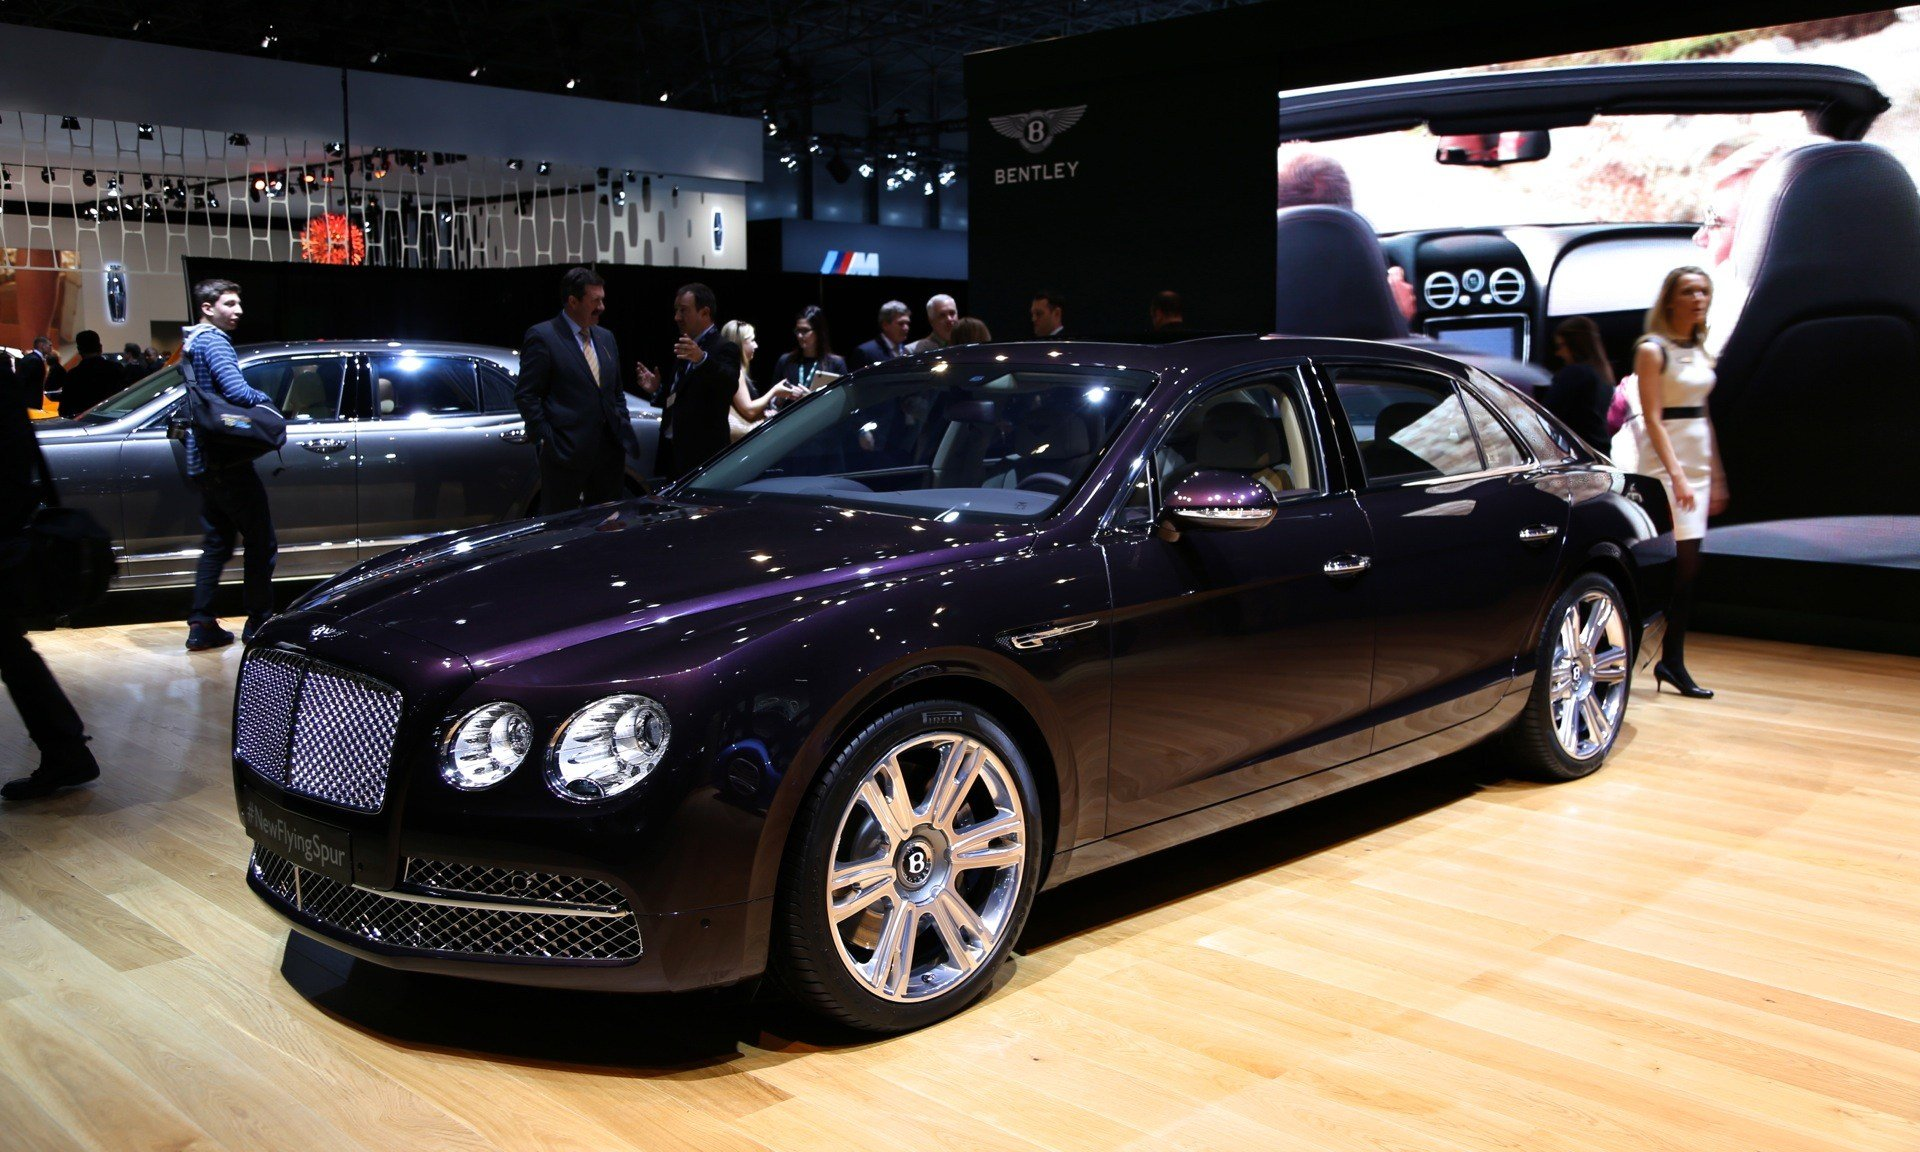 New 2014 Bentley Flying Spur Live Photos From The New York On This Month